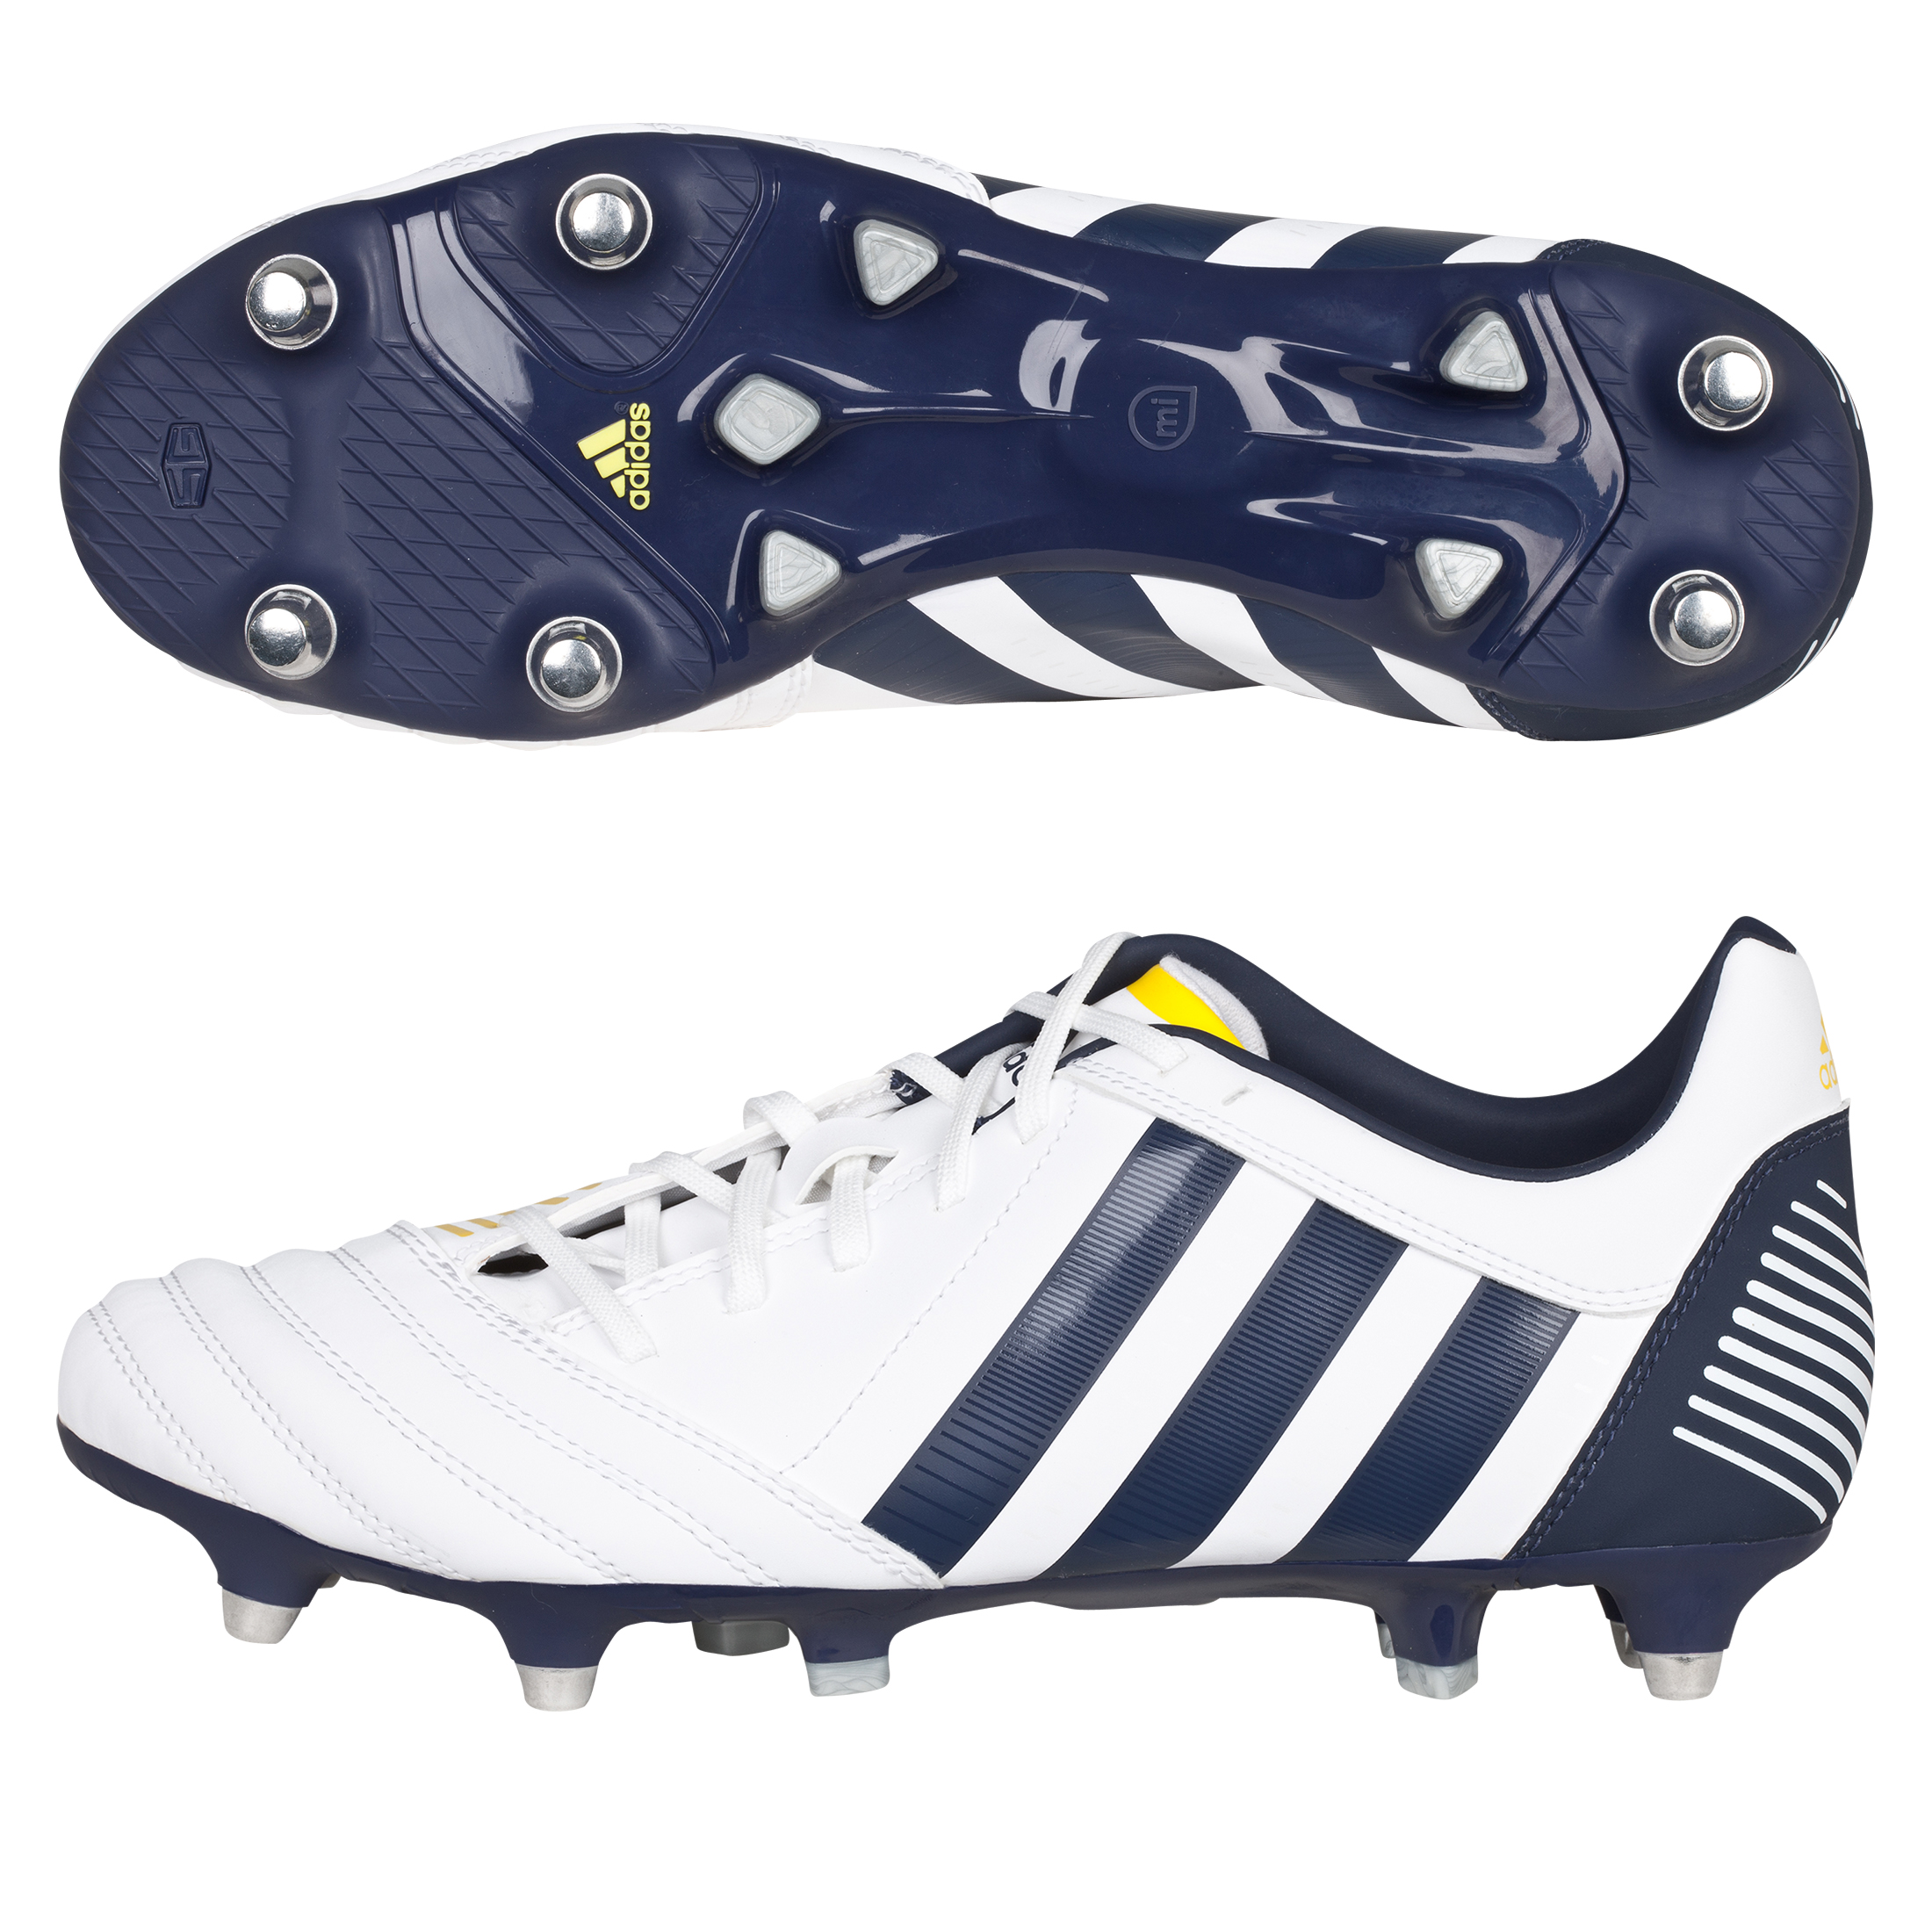 Adidas Absolado Incurza TRX Soft Ground Rugby Boots - White/Urban Sky/Vivid Yellow